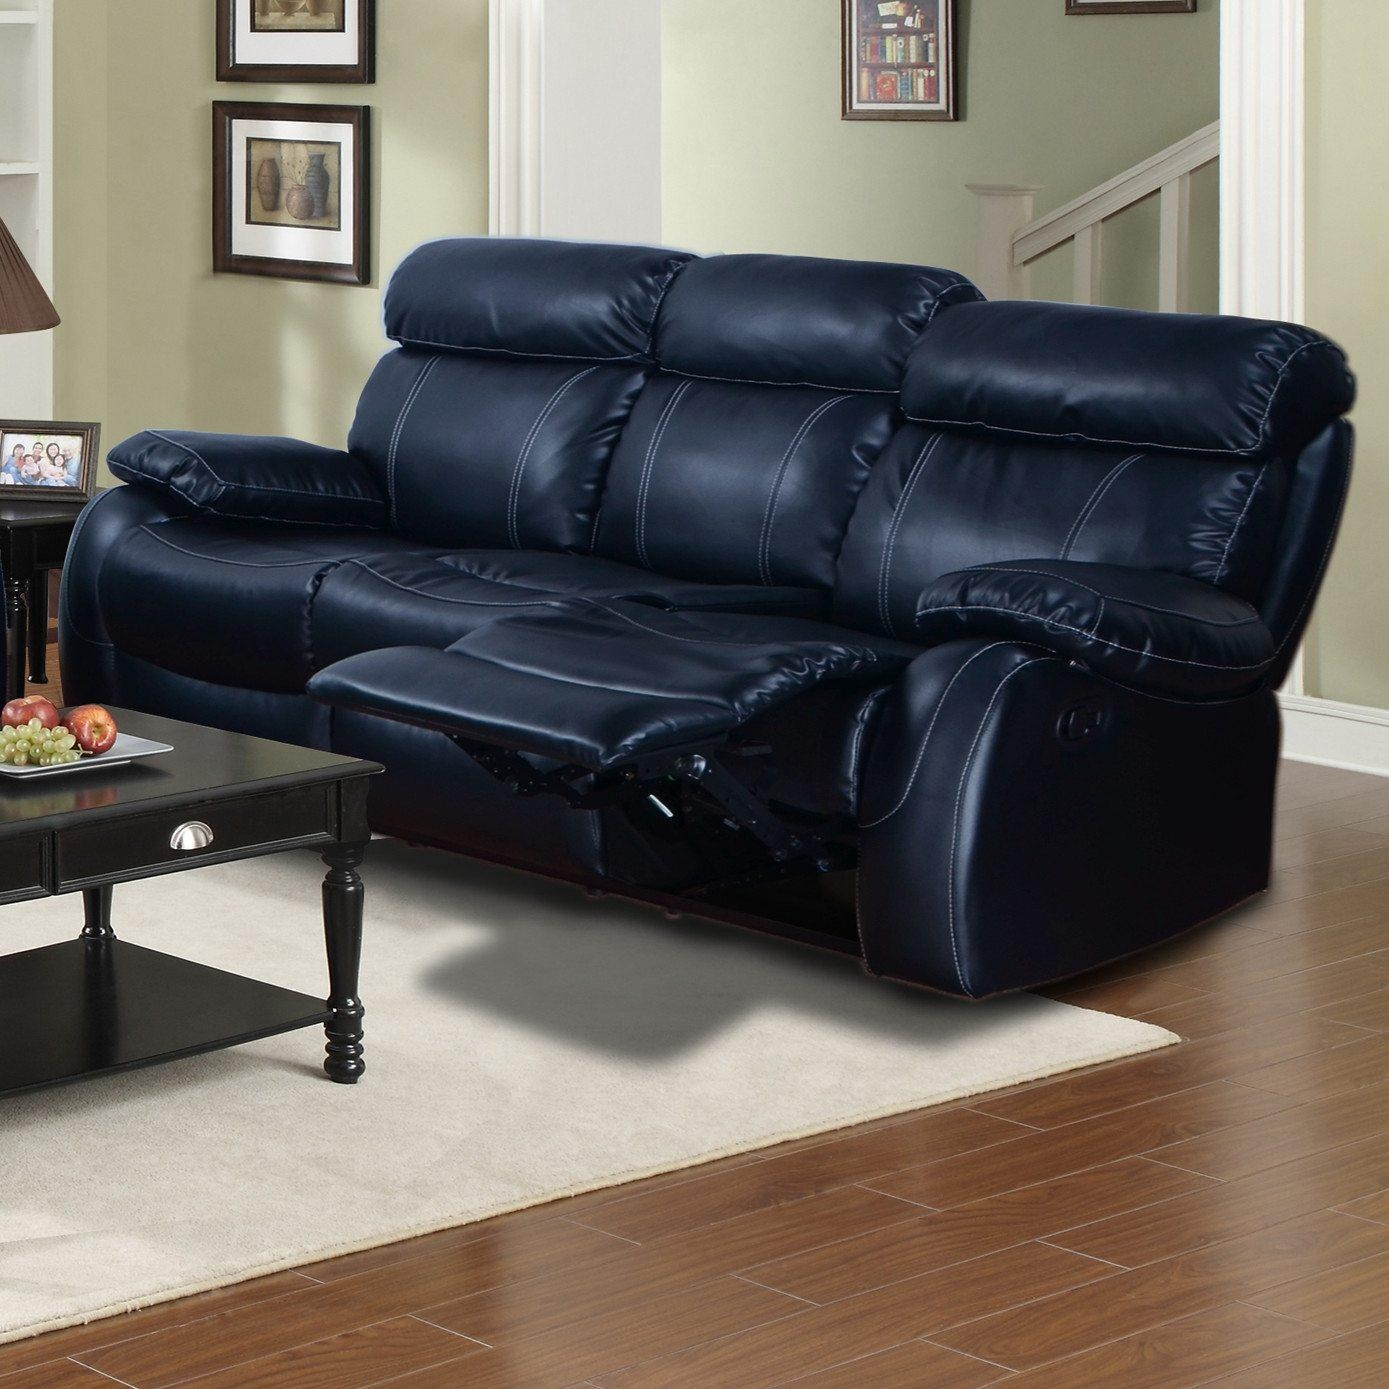 Berkline Reclining Sofa With Inspiration Ideas 15901 | Kengire Throughout Berkline Sectional Sofas (Image 4 of 20)